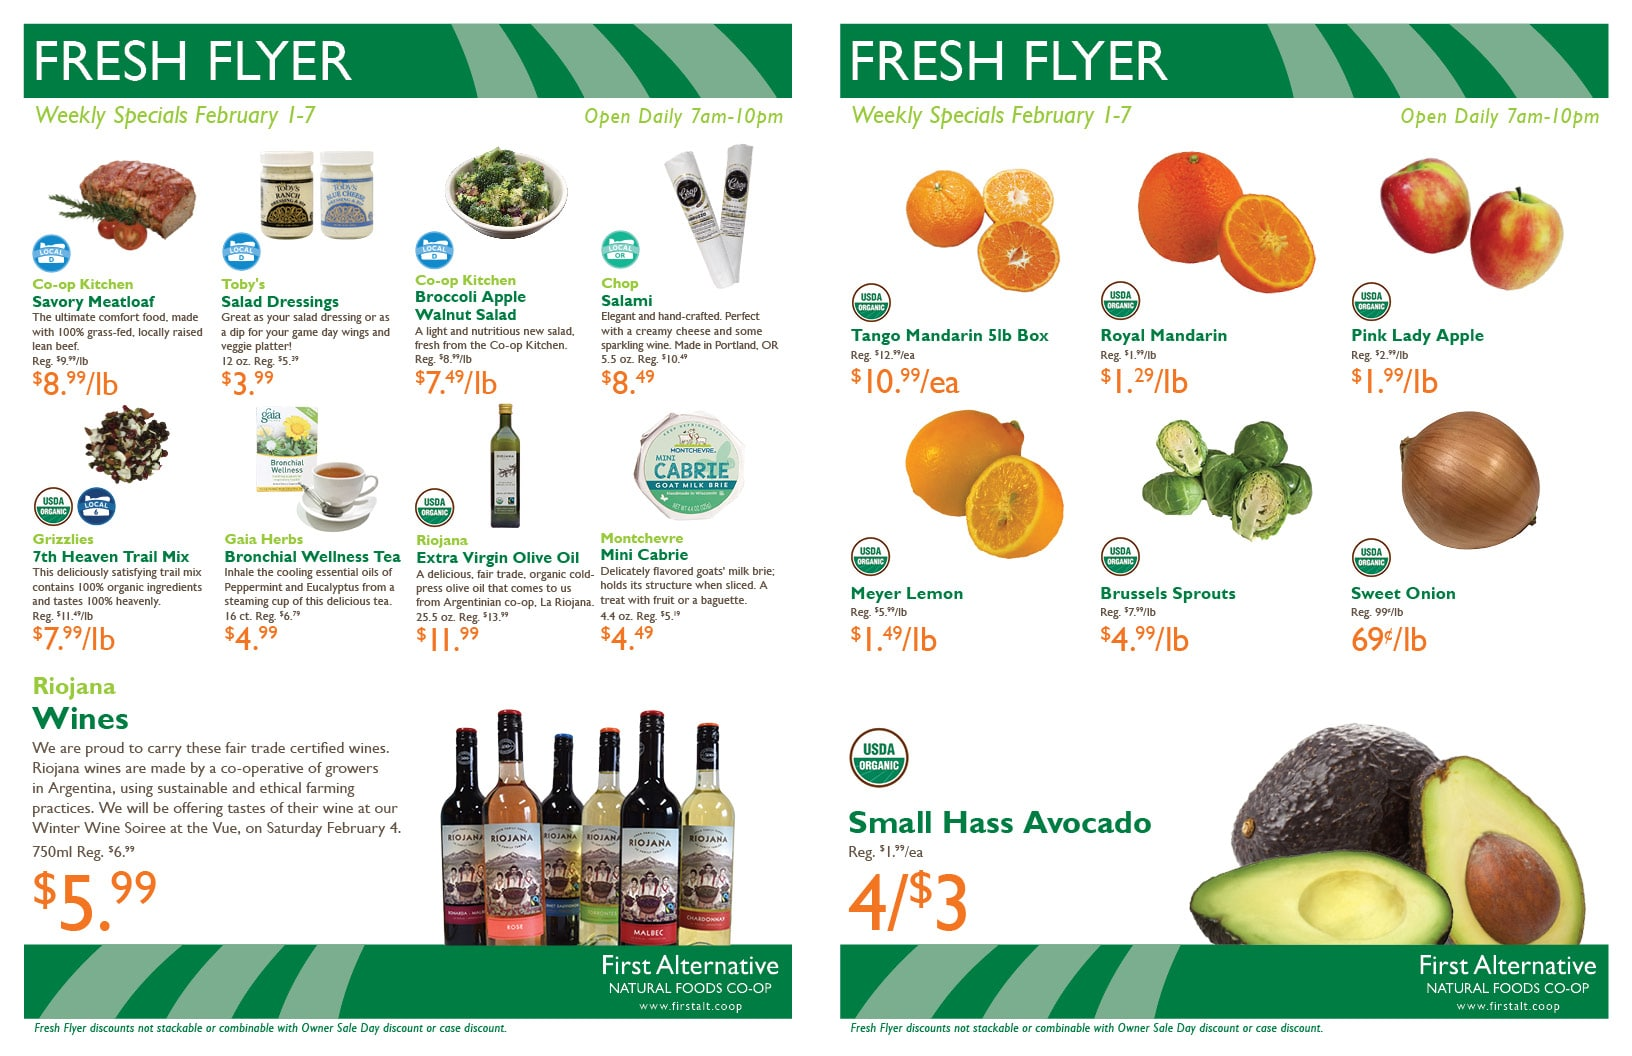 First Alternative Co-op Fresh Flyer Feb. 1-7